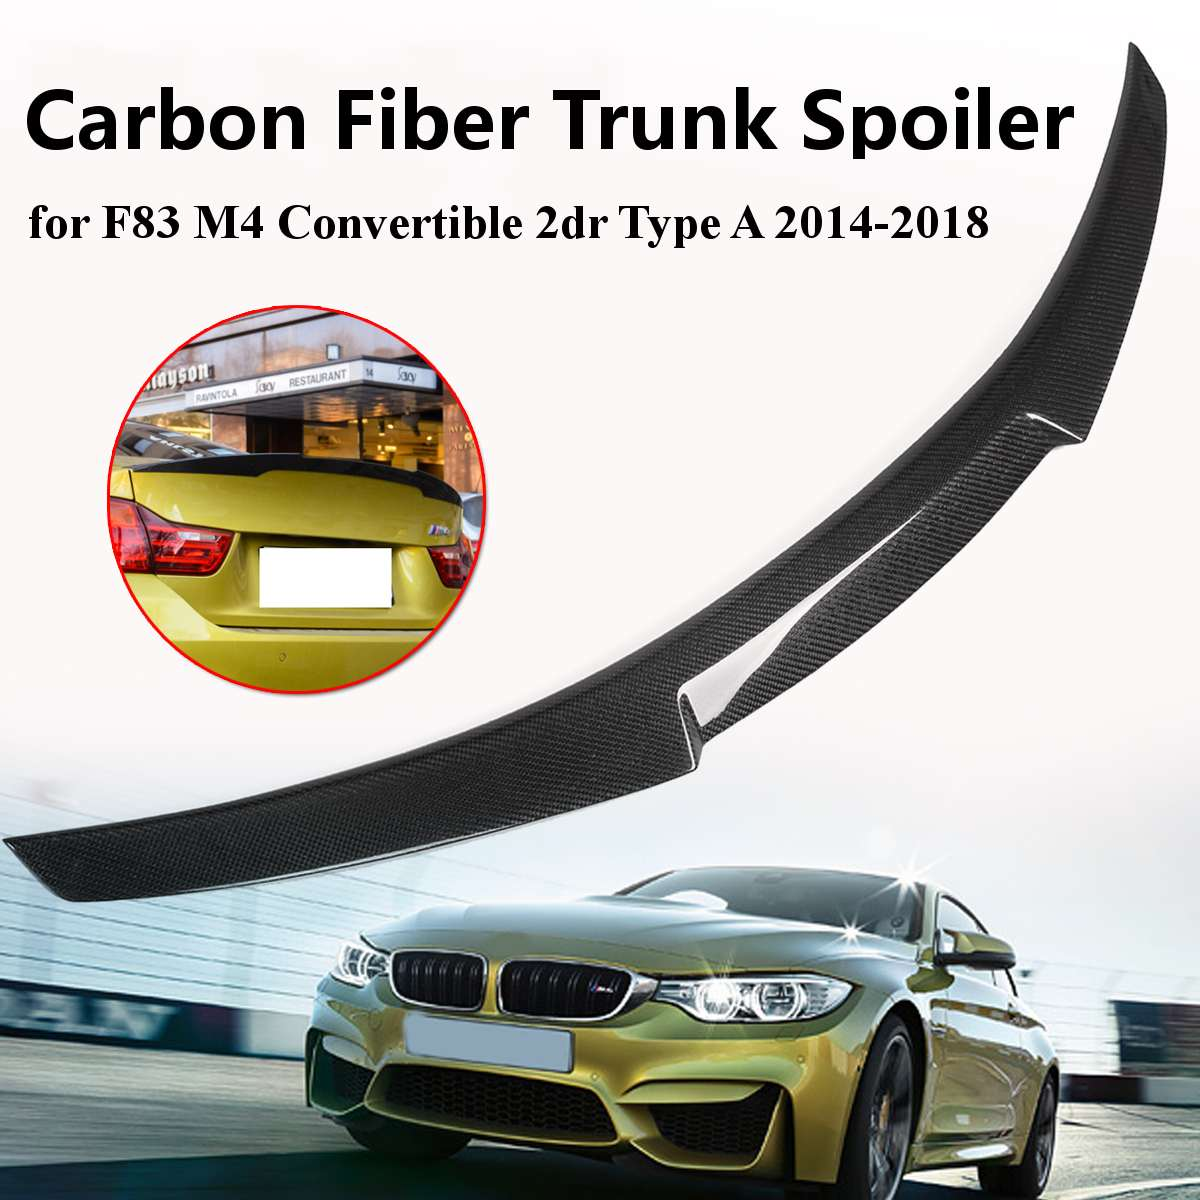 1x For BMW F83 M4 2014 2018 Convertible 2dr Type A Carbon Fiber Rear Trunk Spoiler Wing Light Weight Durability Spoiler Lid